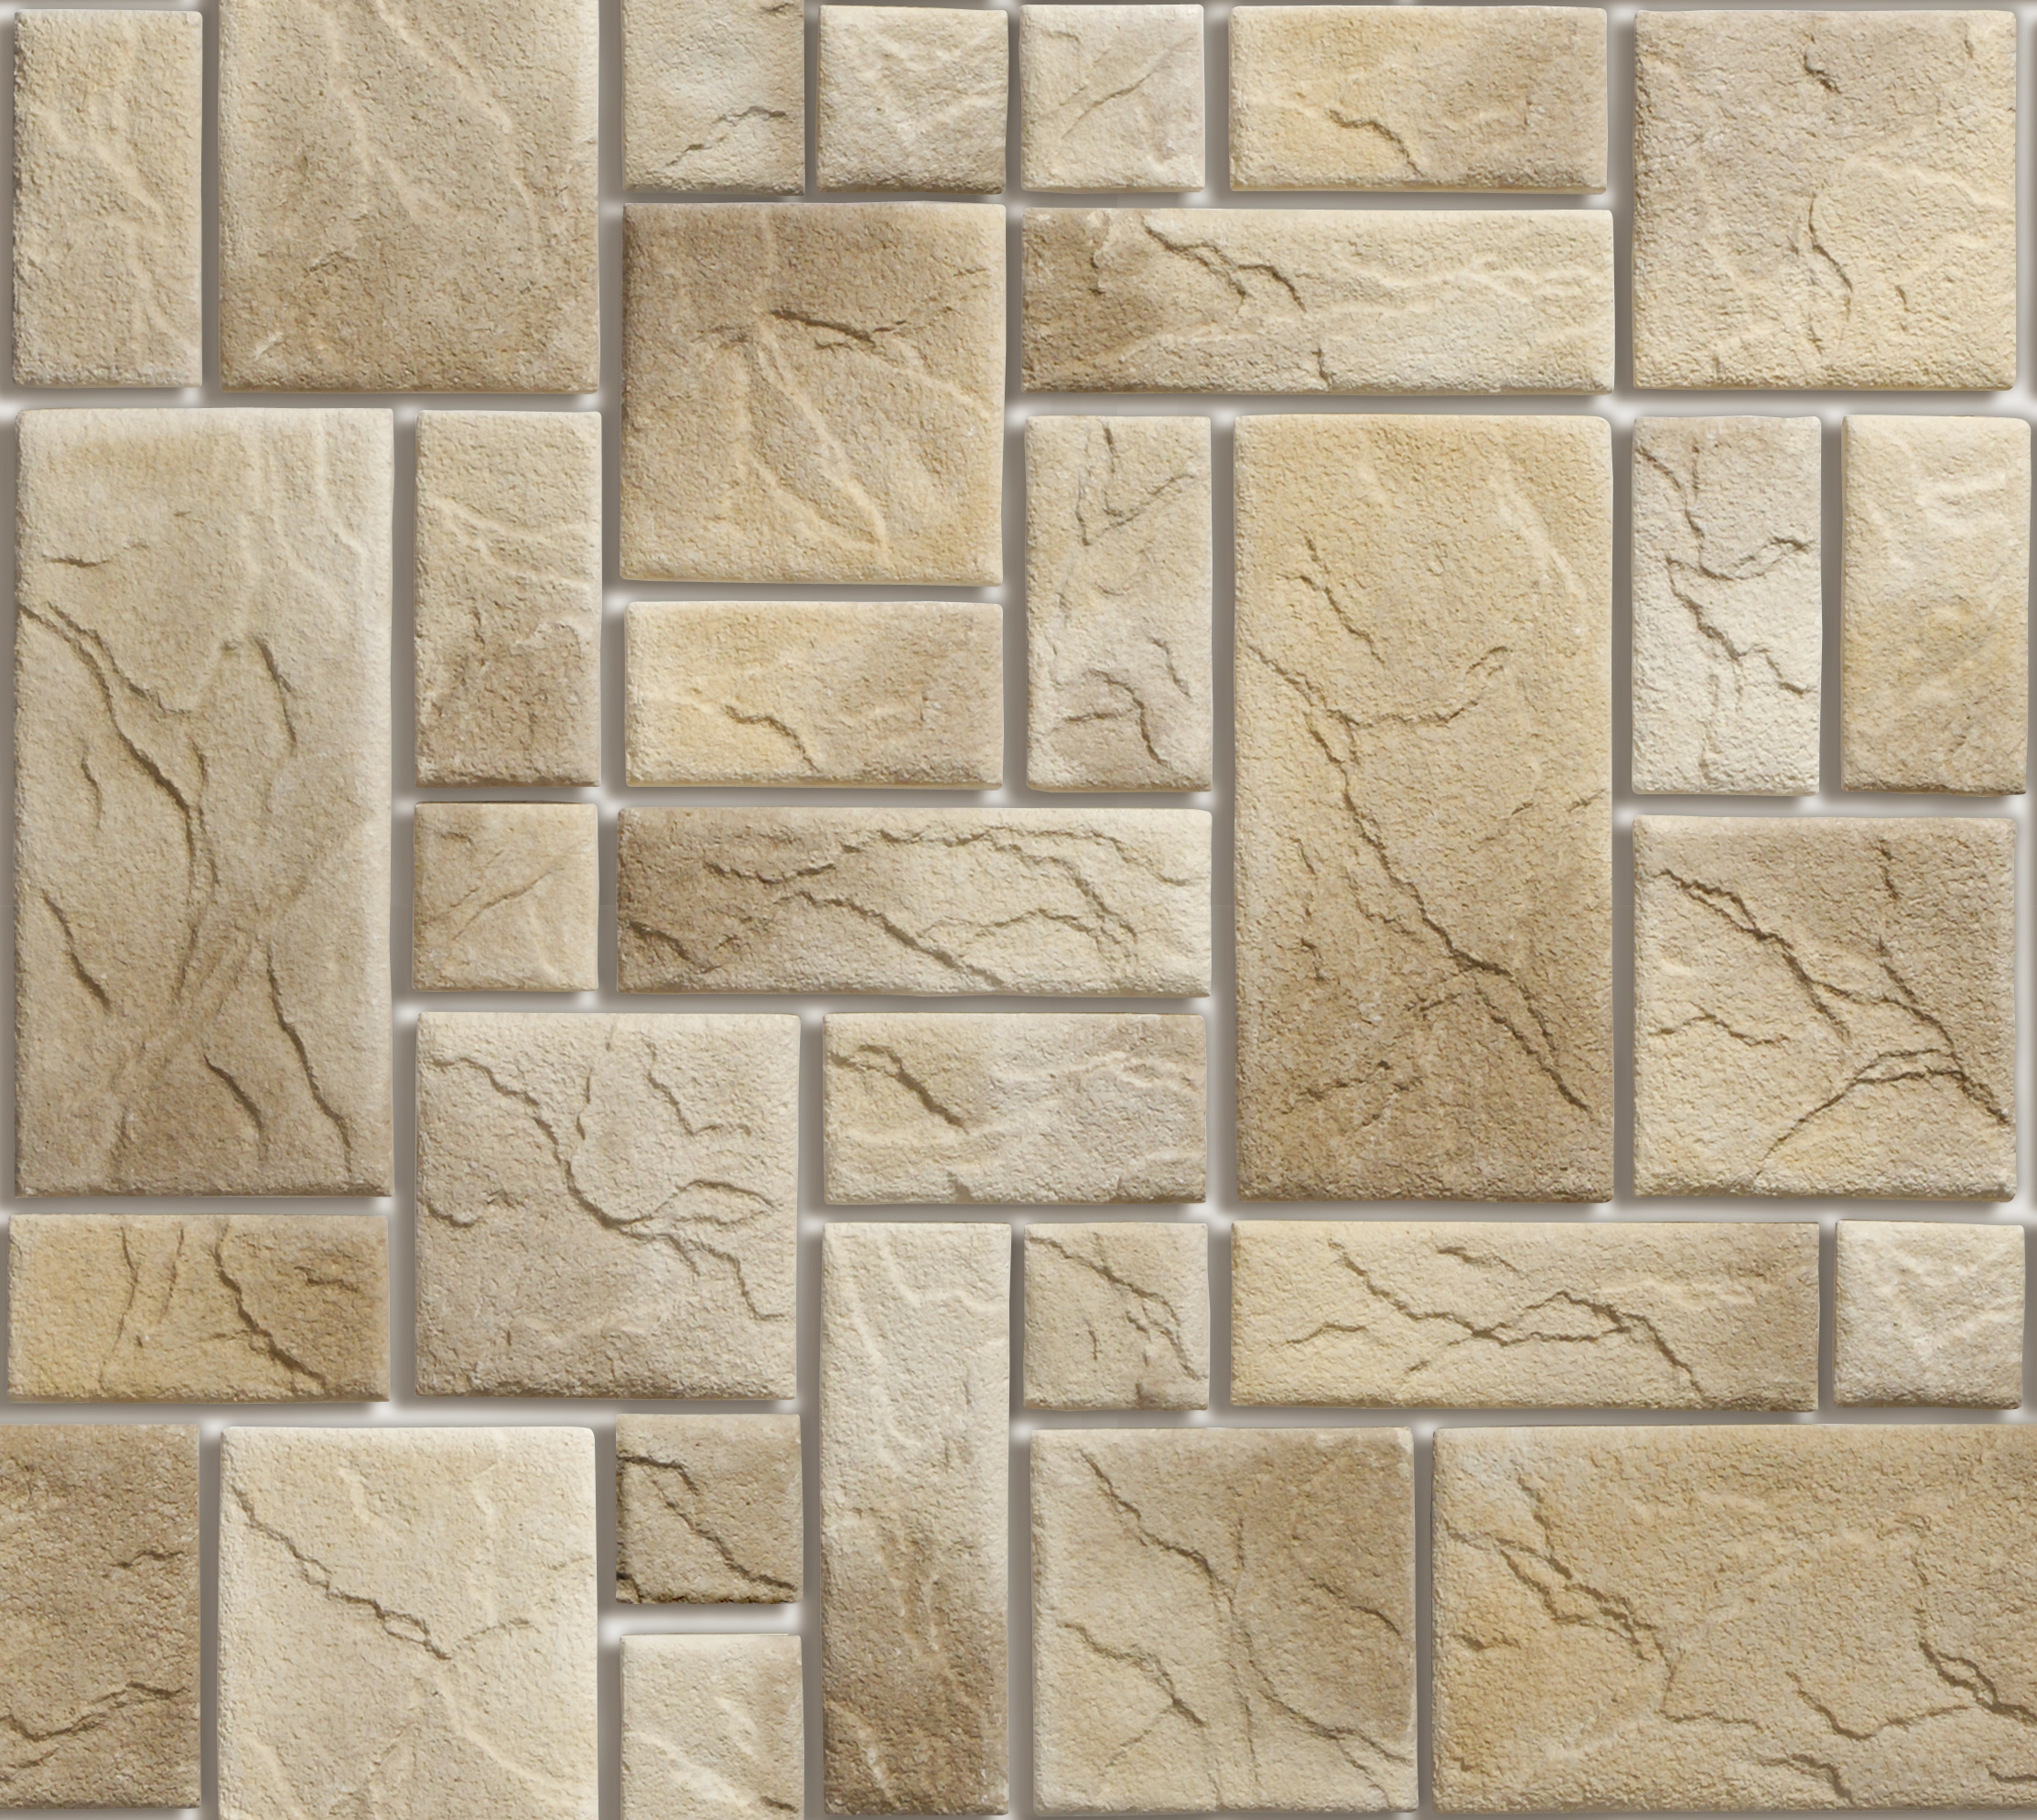 Seamless Texture Of Decorative Stone Malta 114